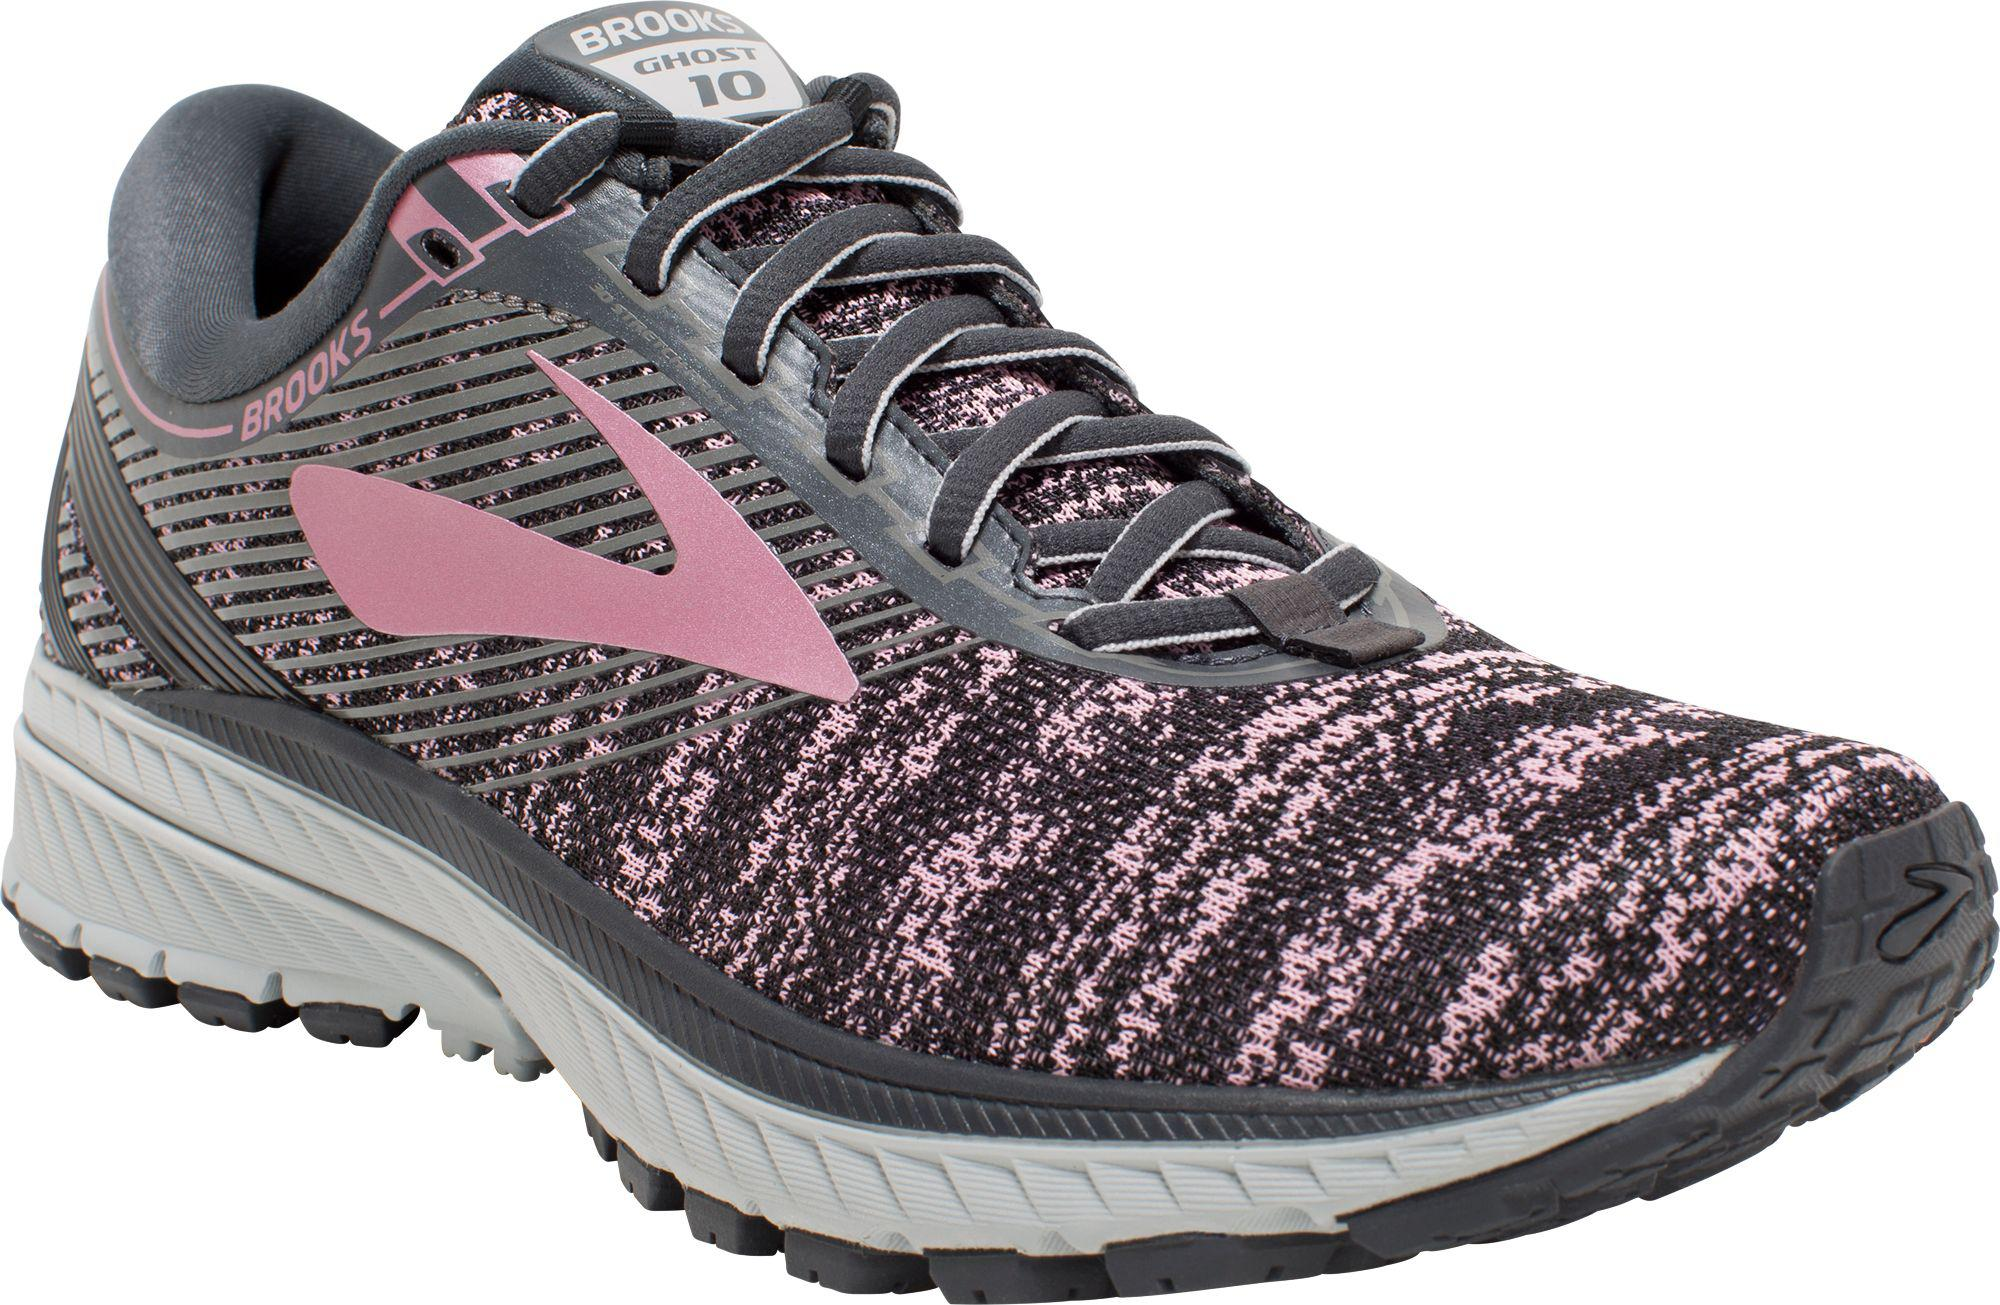 bbd0ac5439d65 Lyst - Brooks Ghost 10 Running Shoes in Gray